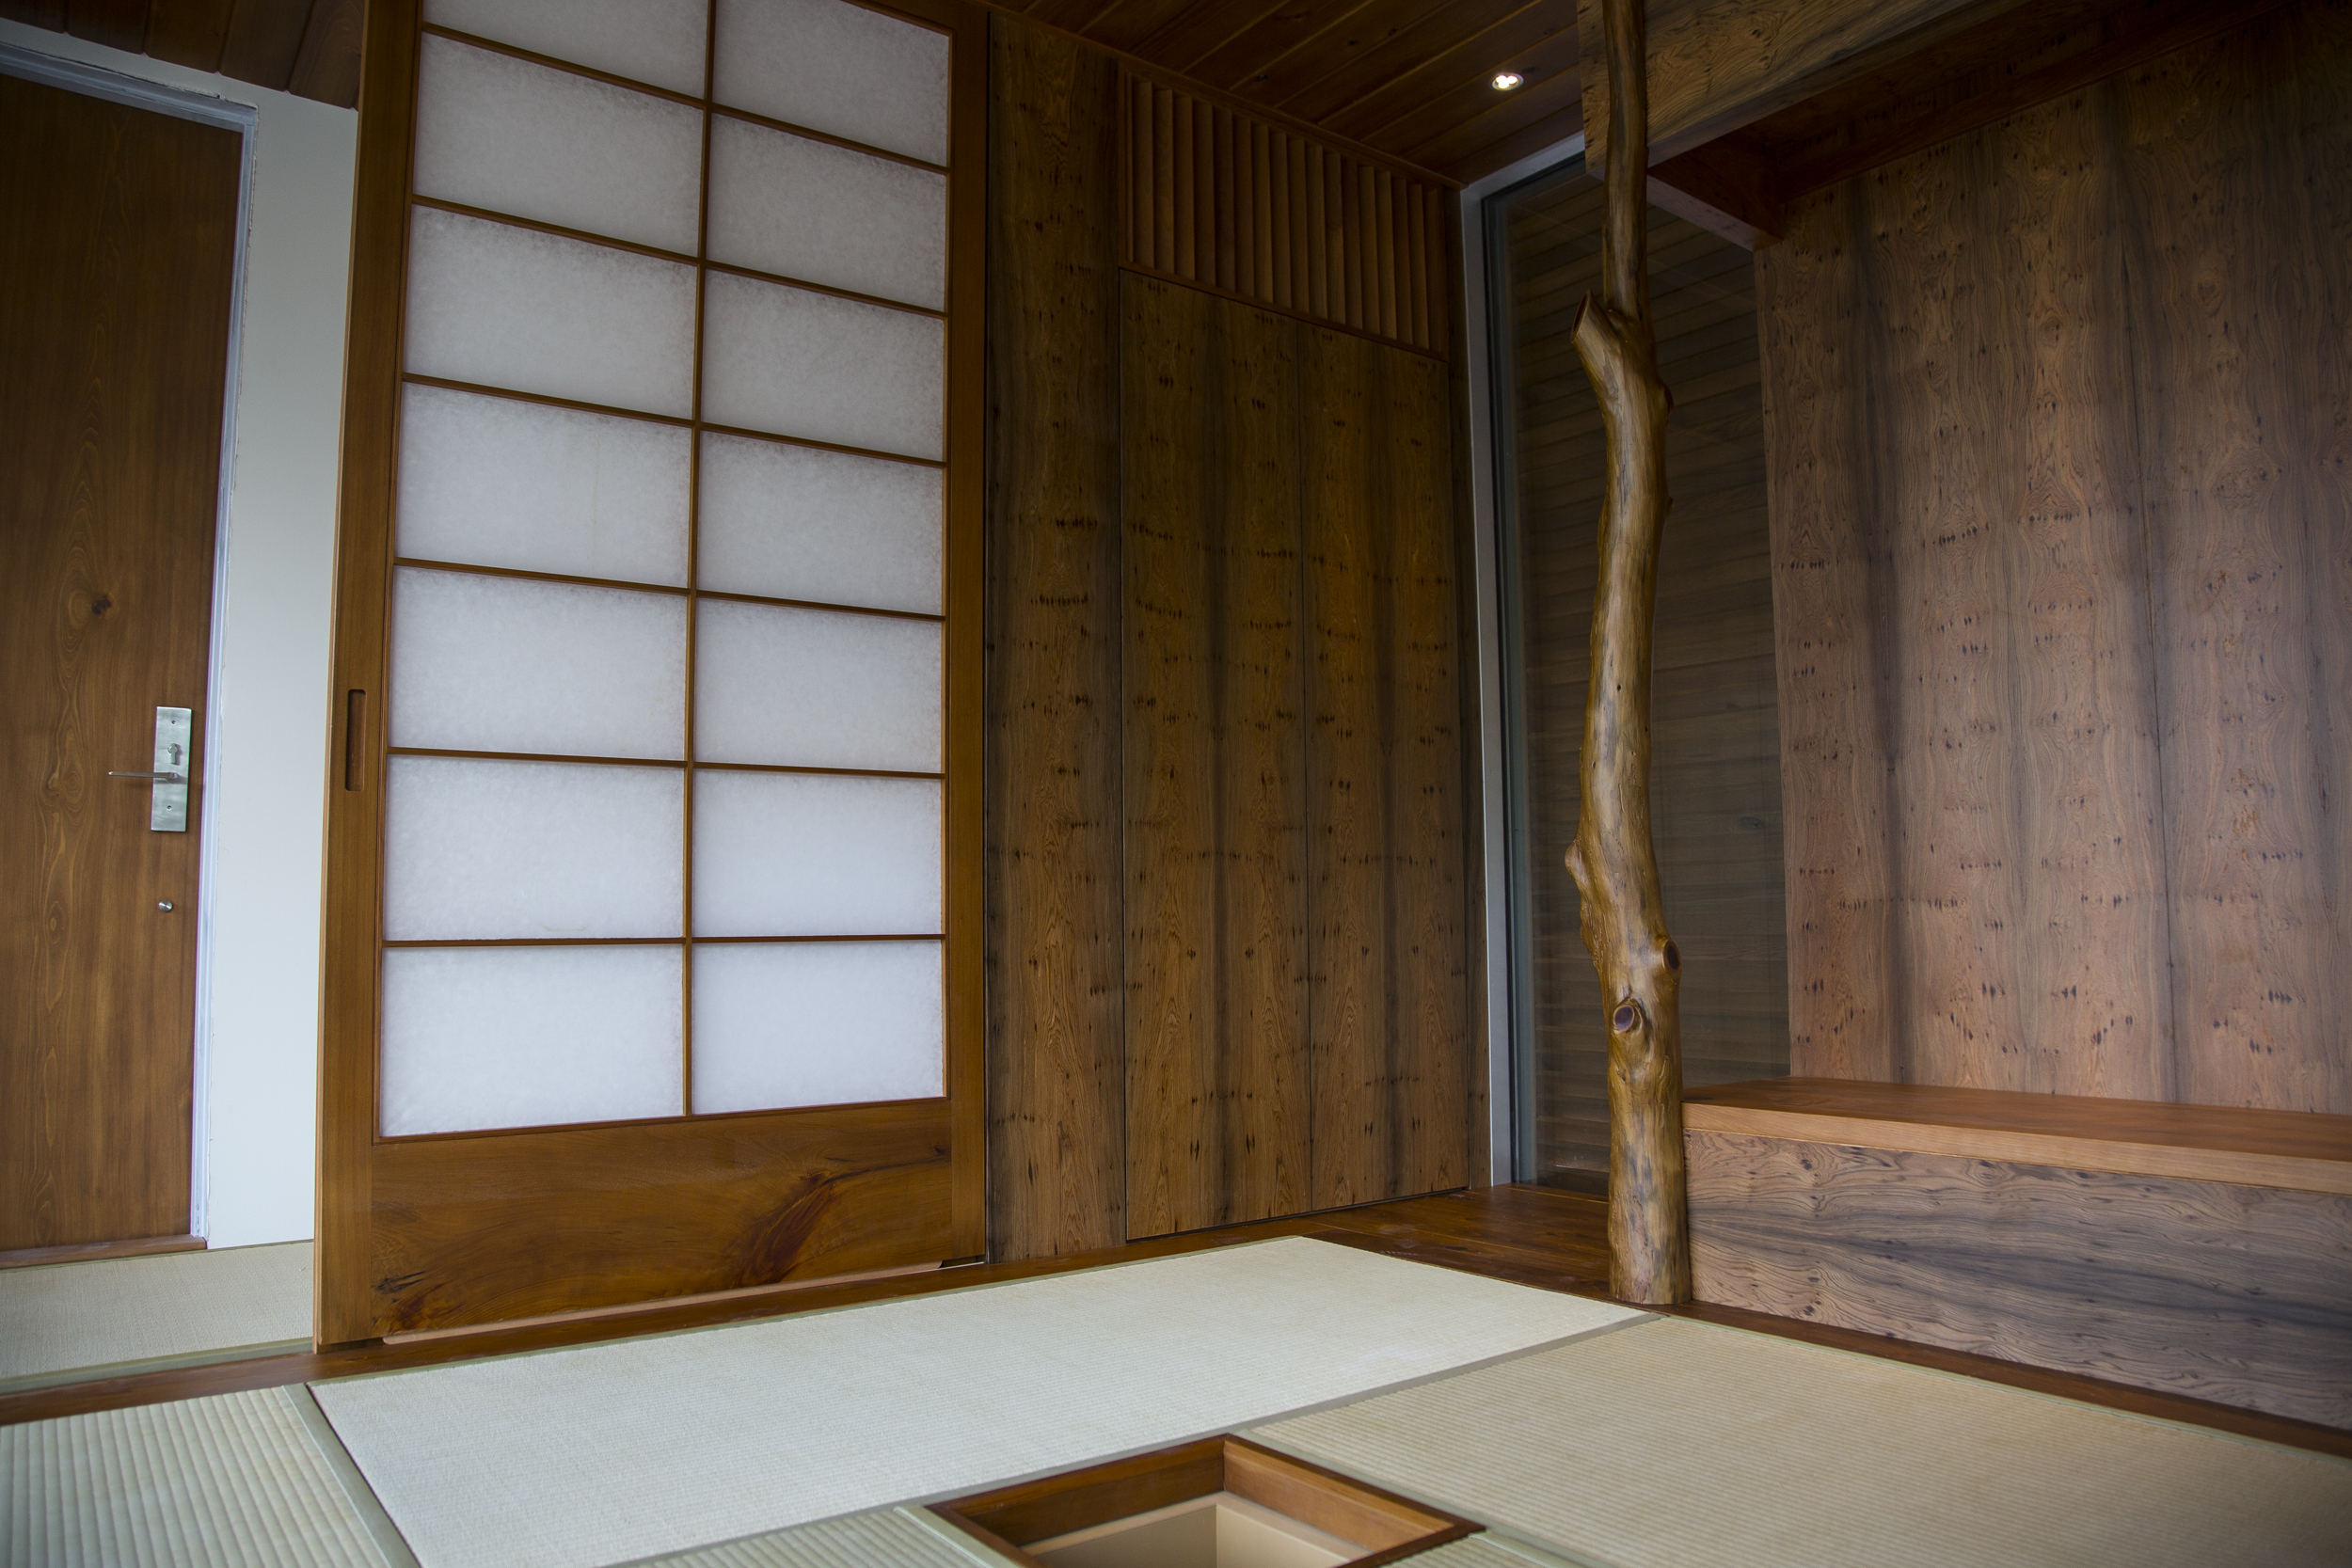 Interior woodworking ( by Dale ) in the Japanese Tea House